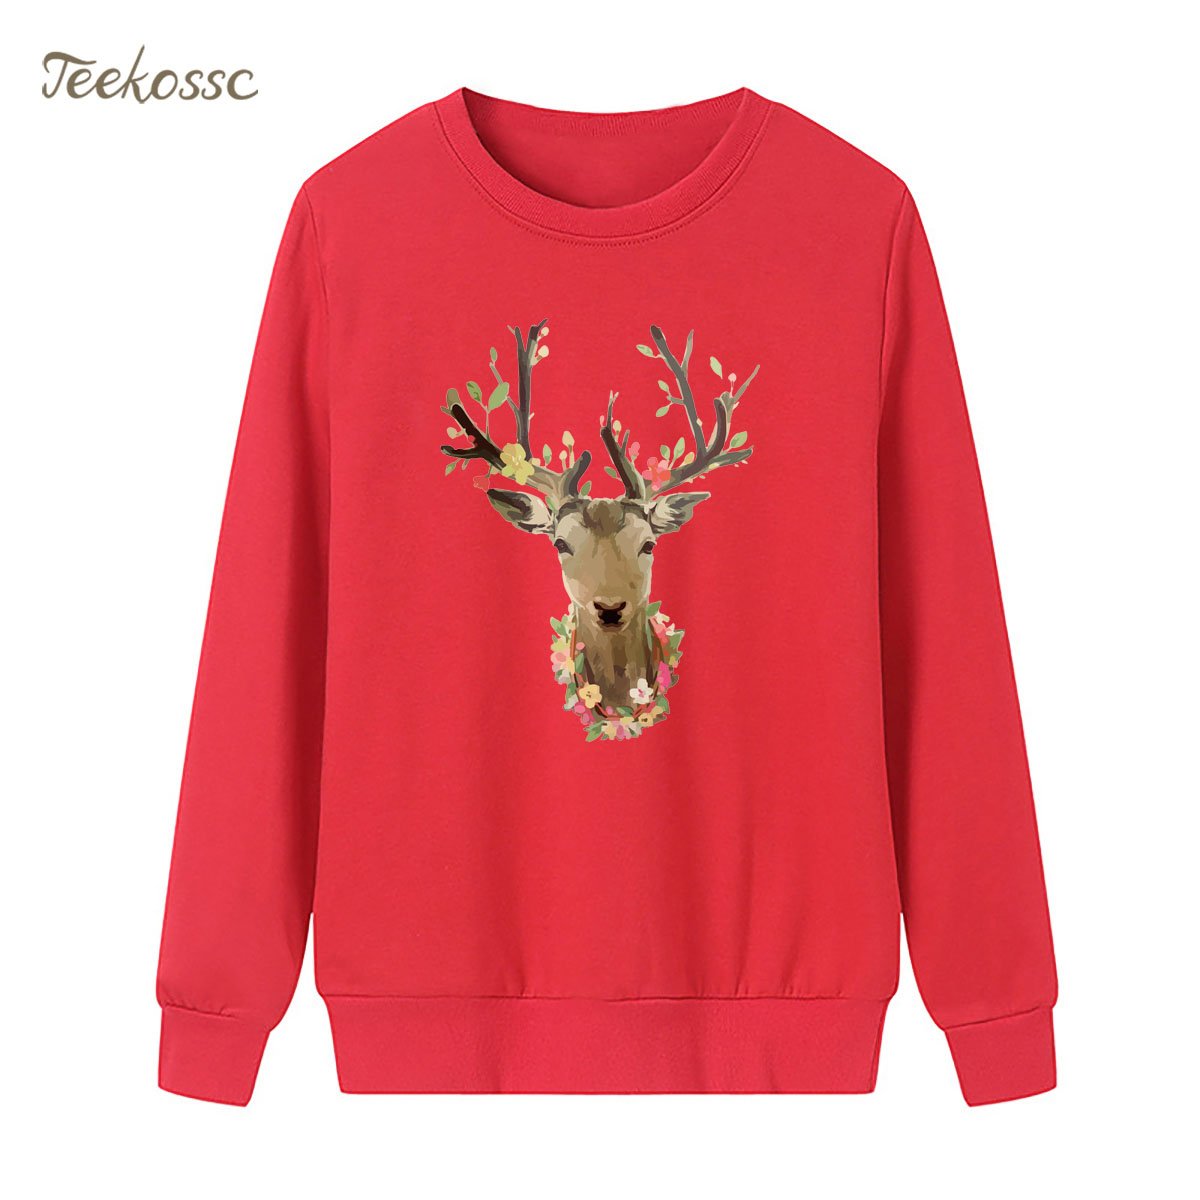 Flower Elk Sweatshirt Red Hoodie 2018 New Design Winter Autumn Women Lasdies Pullover Fleece Loose Casual Streetwear Brand Hoody